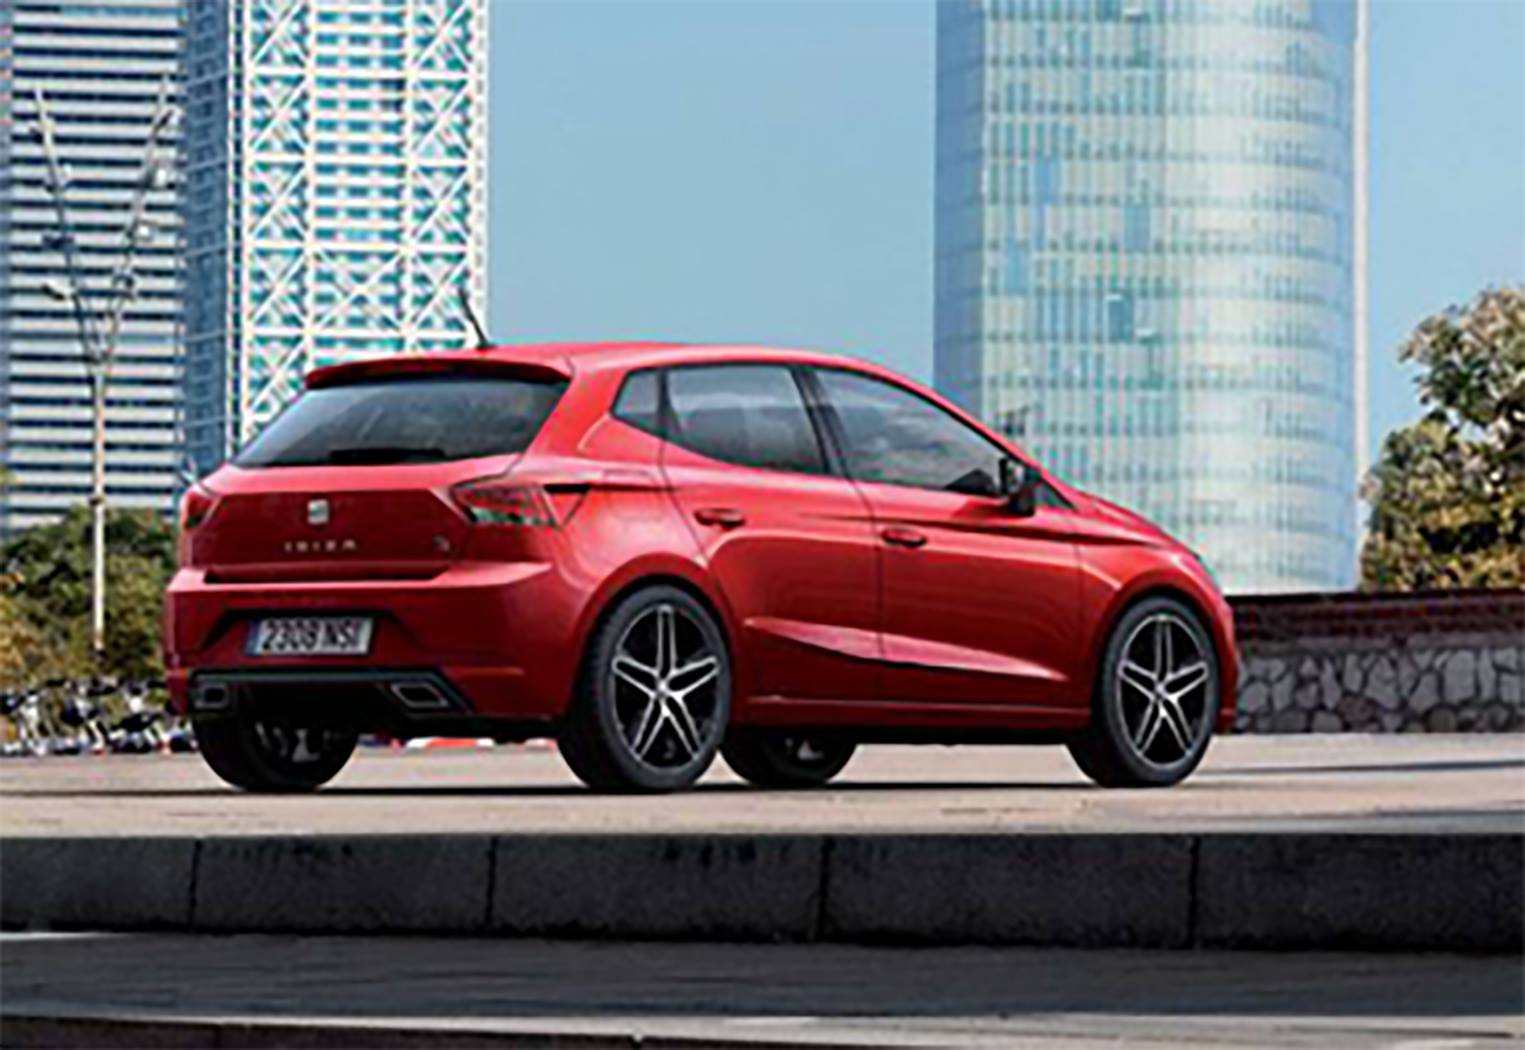 new seat ibiza looks like first official photos leaked carscoops. Black Bedroom Furniture Sets. Home Design Ideas